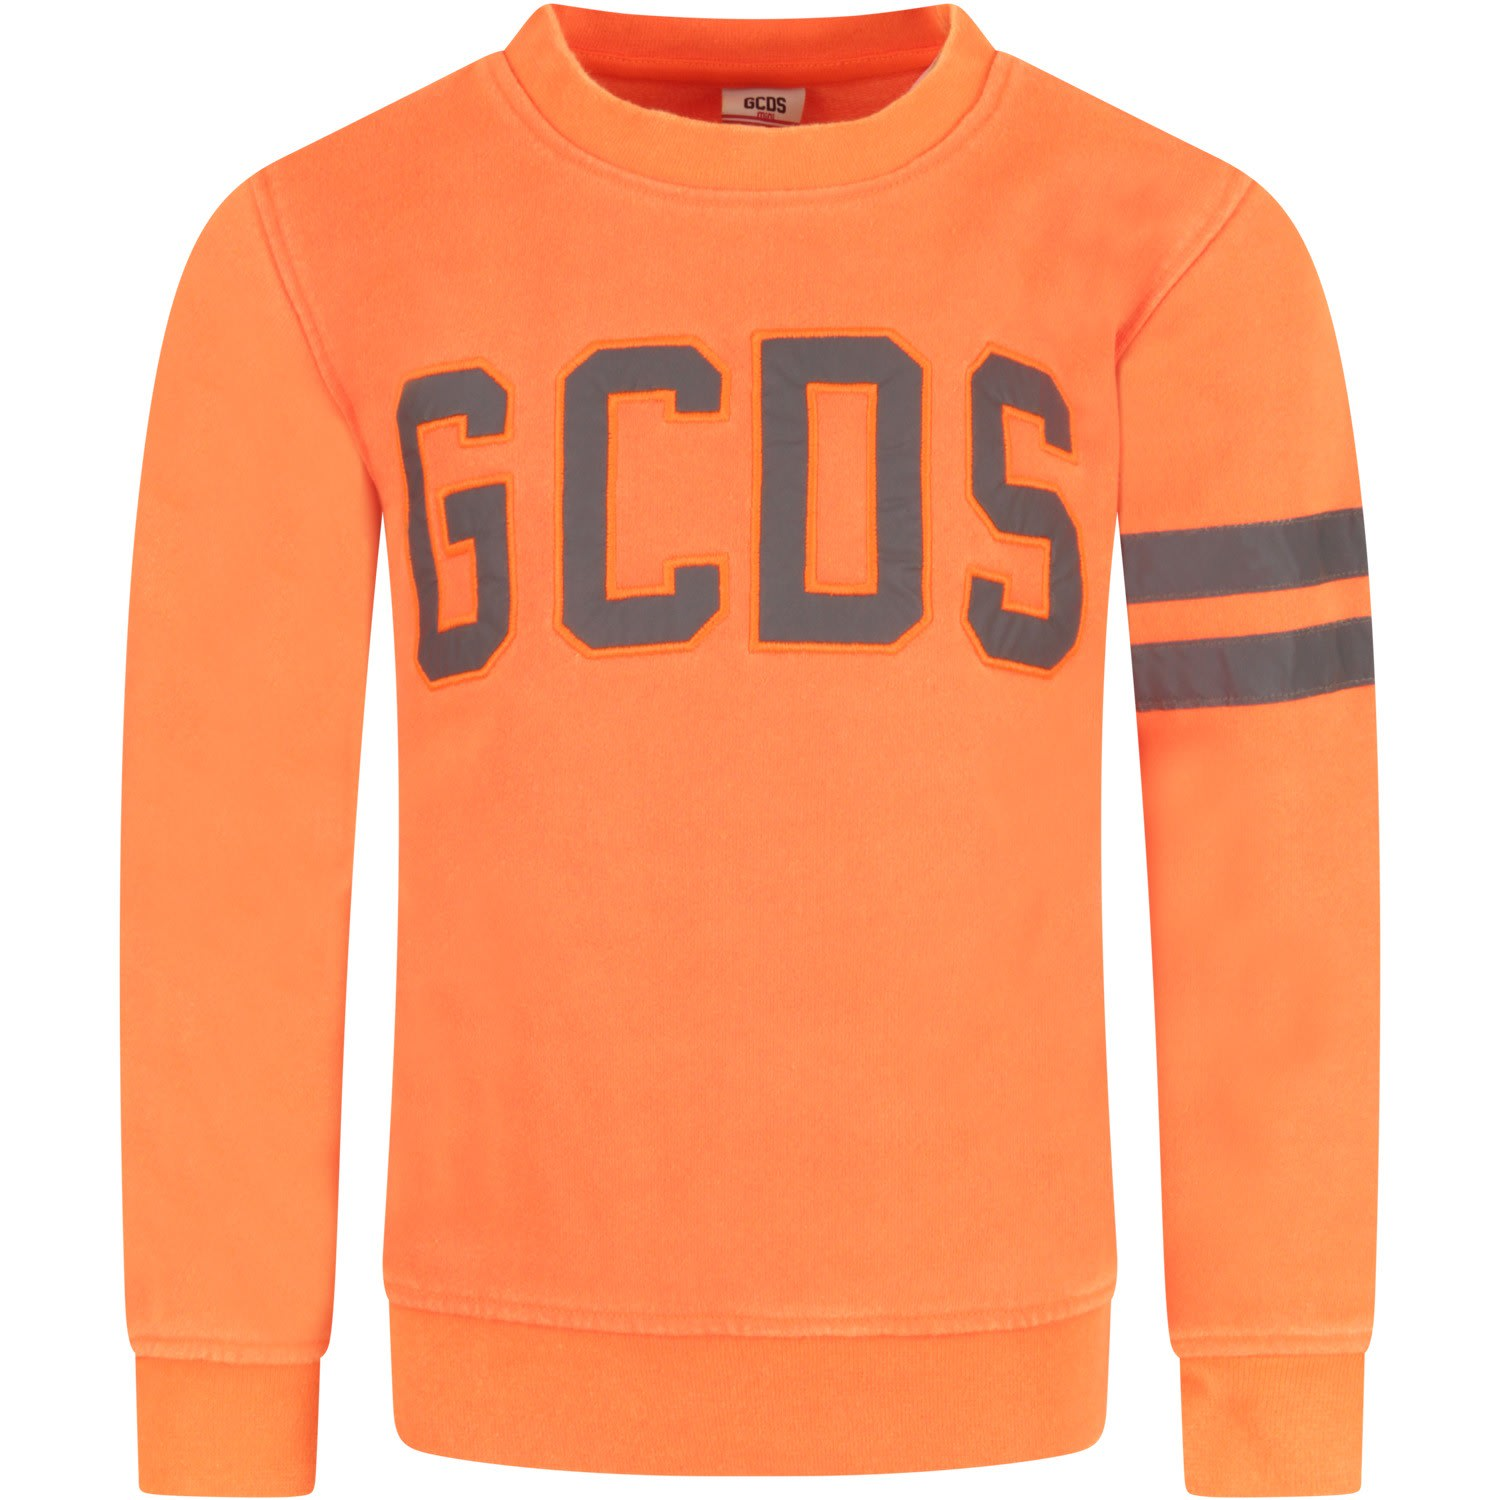 Color: Neon orange Neon orange sweatshirt, with long sleeves and ribbed crew-neck. It is embellished with reflective logo with neon orange trimming, embroidered on the front and stripes, on the sleeve. 75% Polyester 25% Cotton. Machine wash at 30% C.